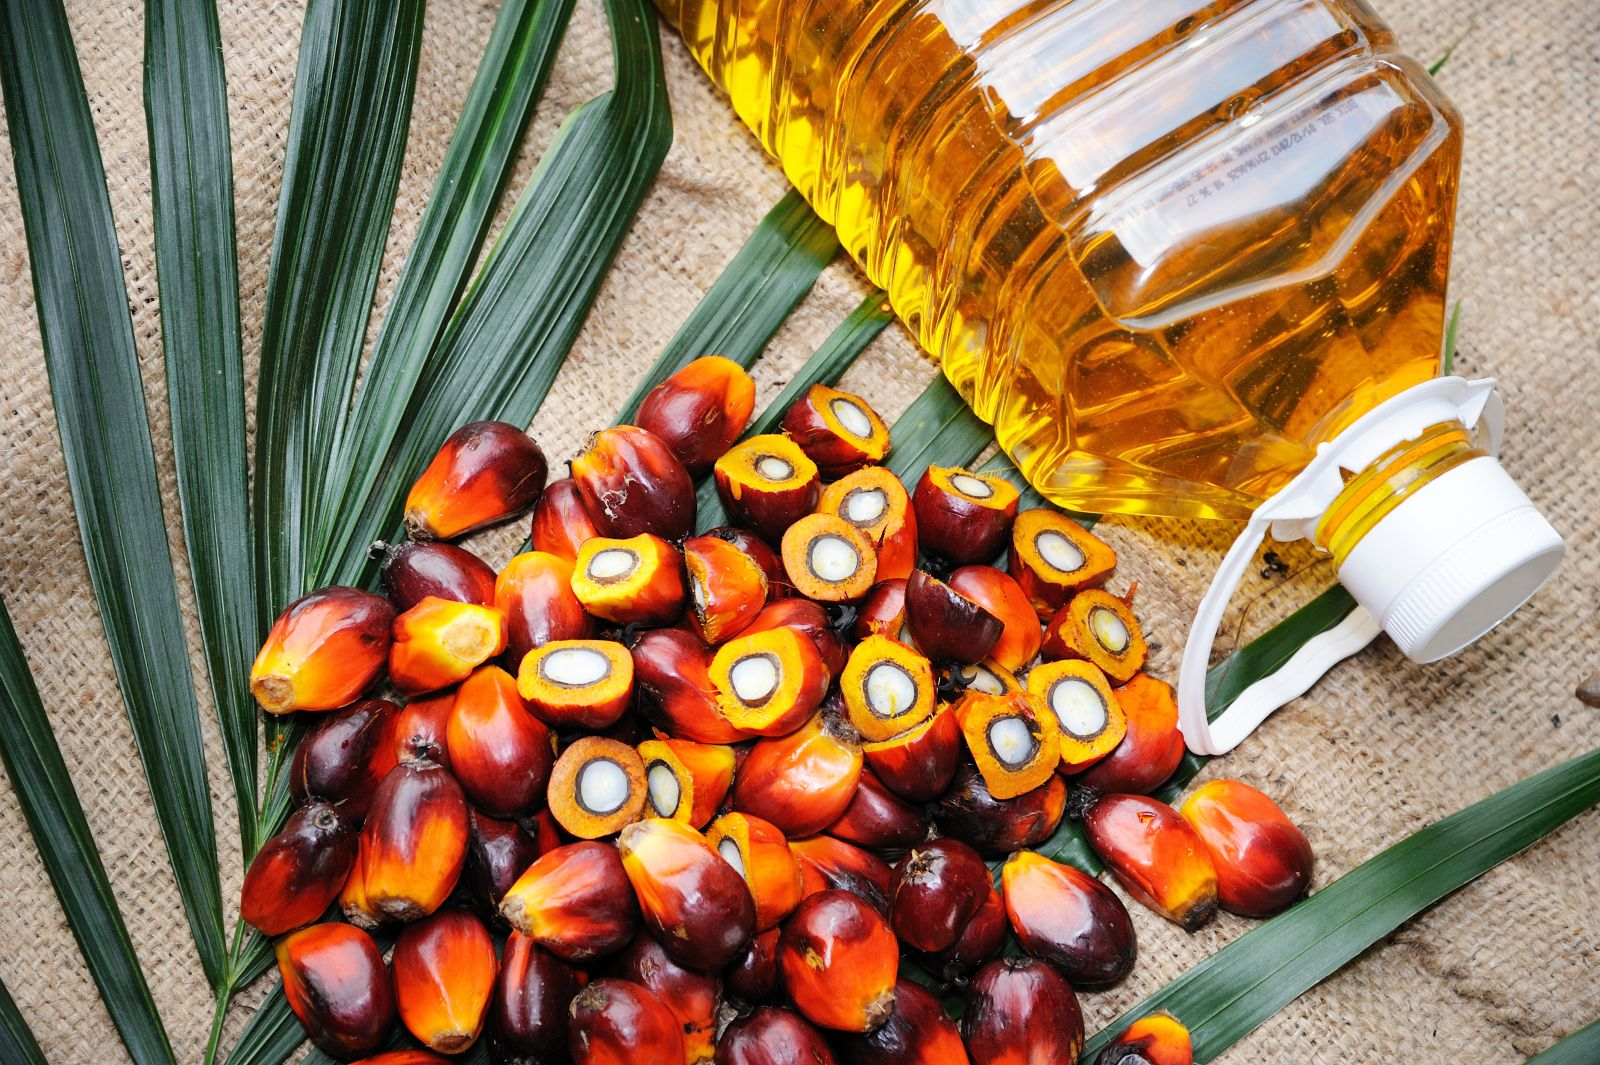 Export trade of Nepal dependent on India's mood, palm oil exports arbitrary